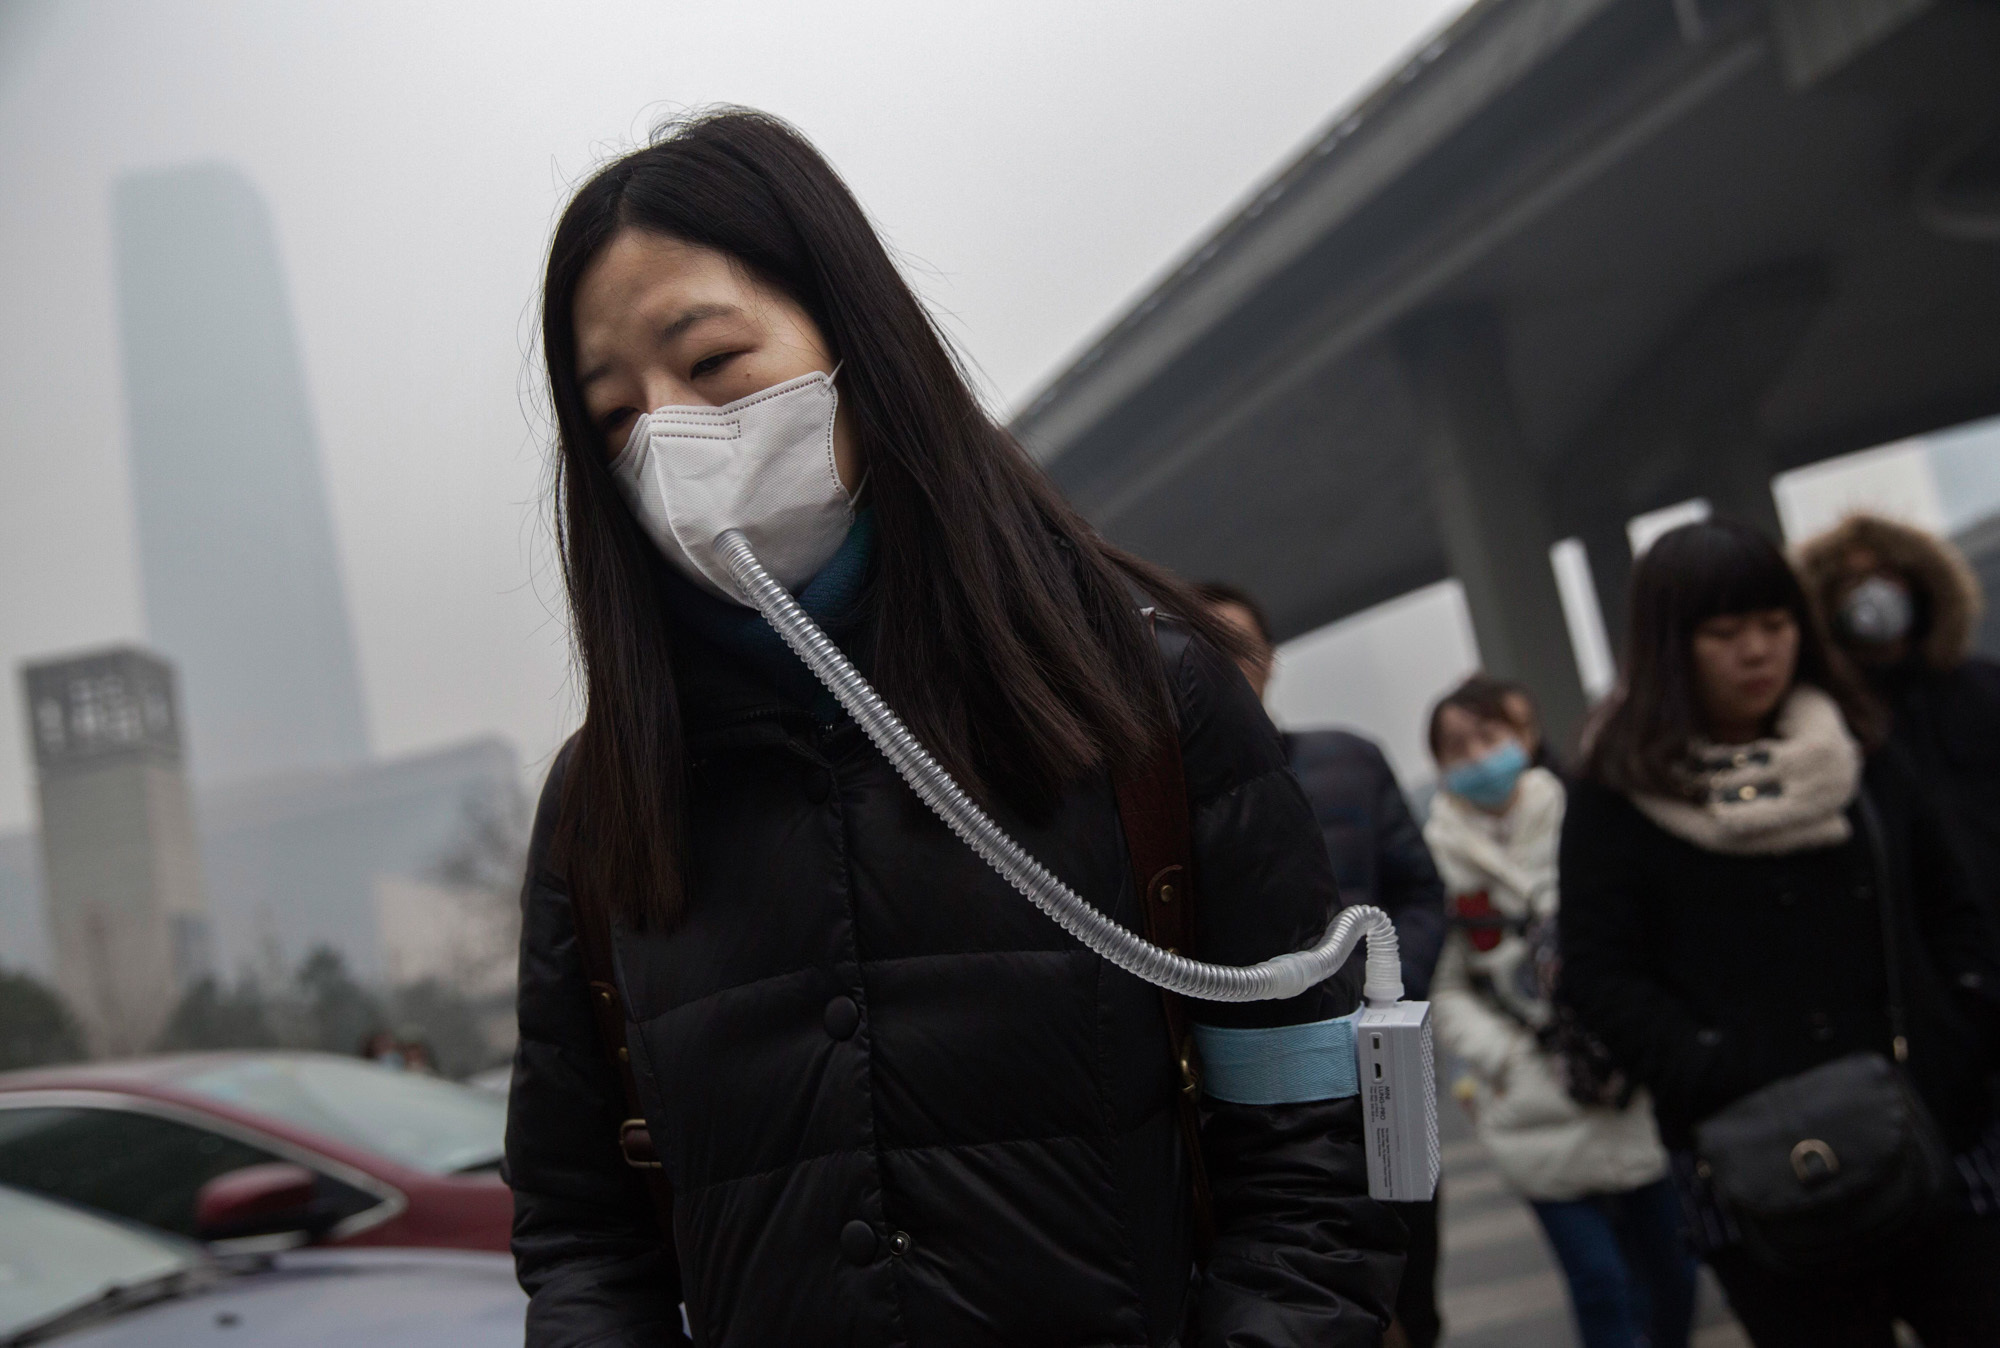 A woman wears a mask and filter as she walks to work during heavy pollution in Beijing China